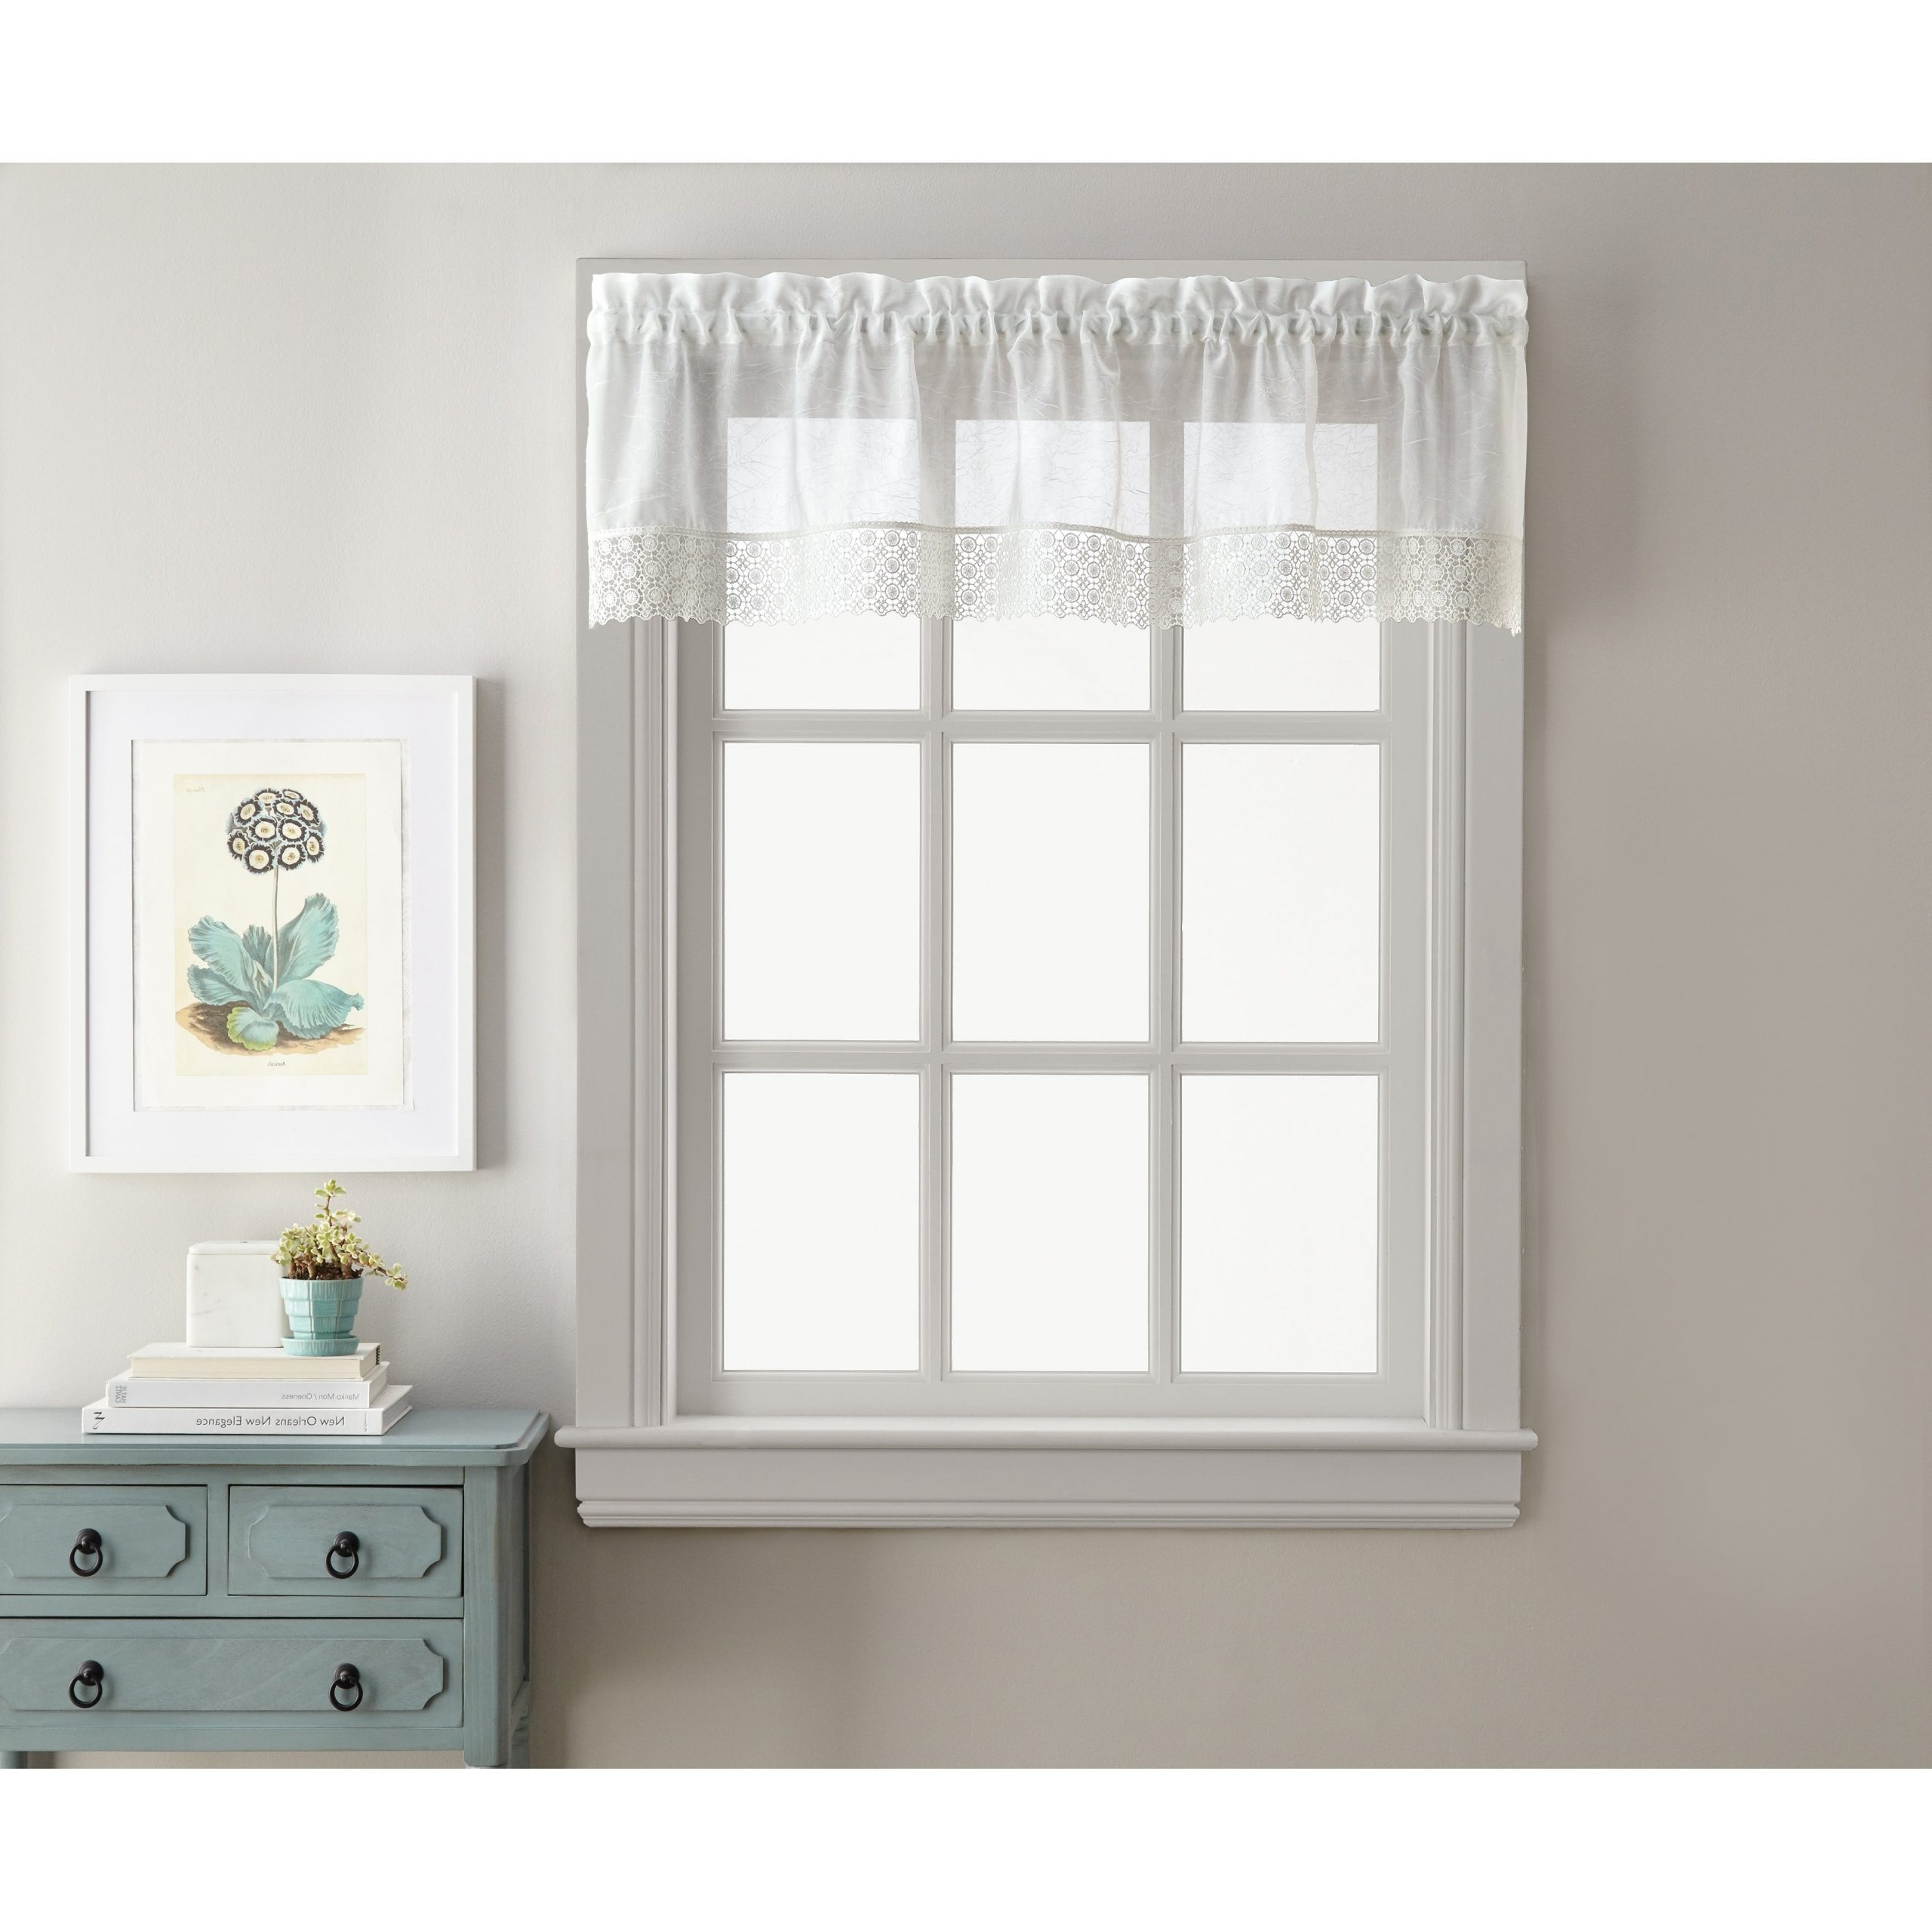 Sweet Adele White Tailored Valance And Tier Pair Curtain Collection With 2021 Tailored Valance And Tier Curtains (View 16 of 20)